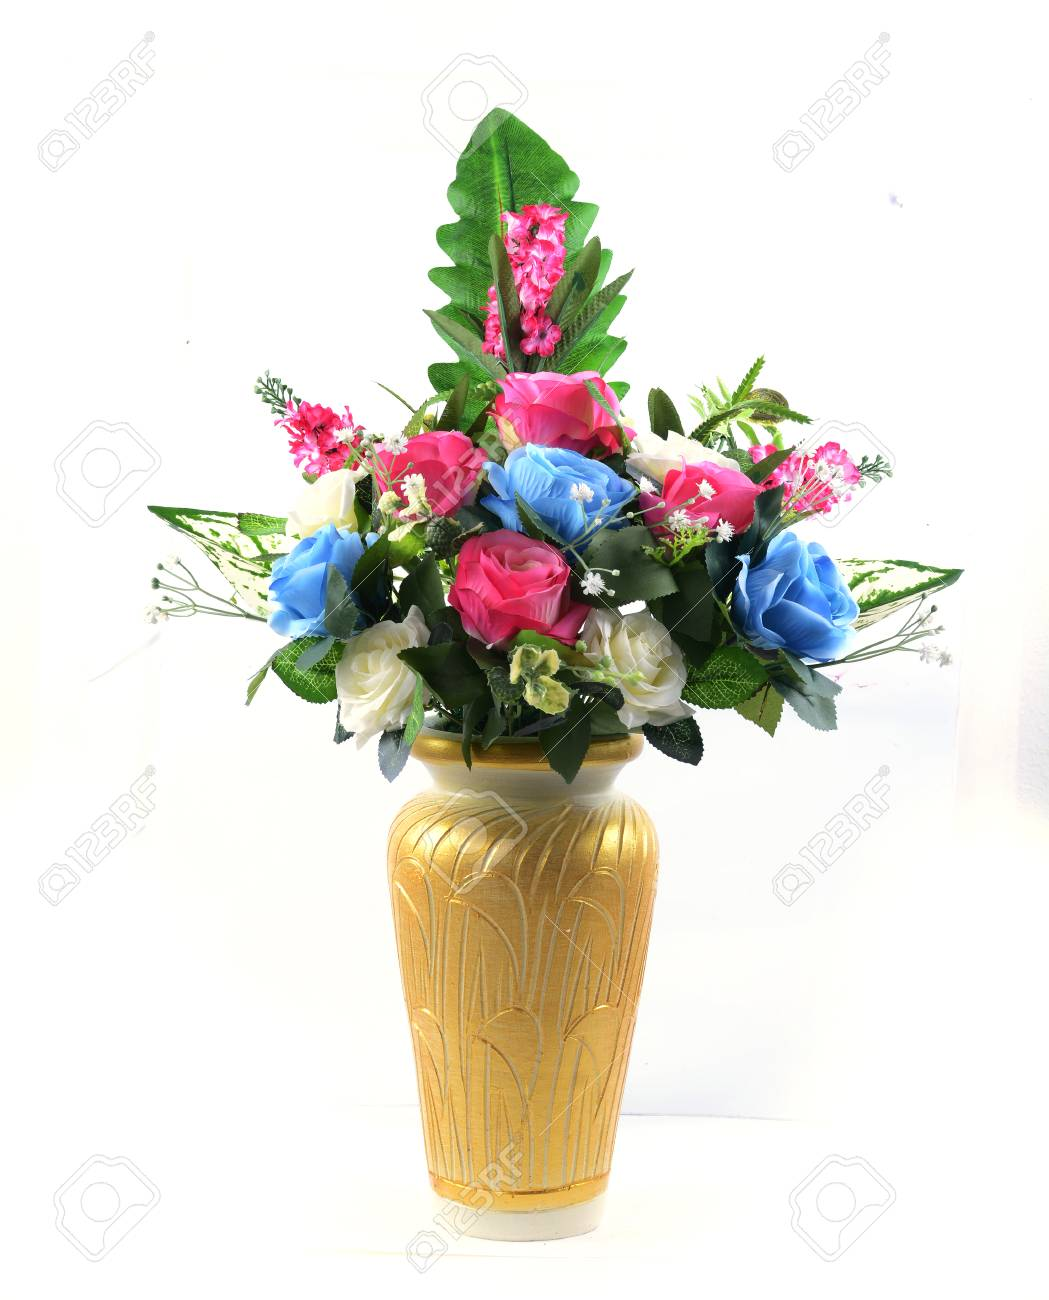 flowers in vase isolated Stock Photo - 23112170